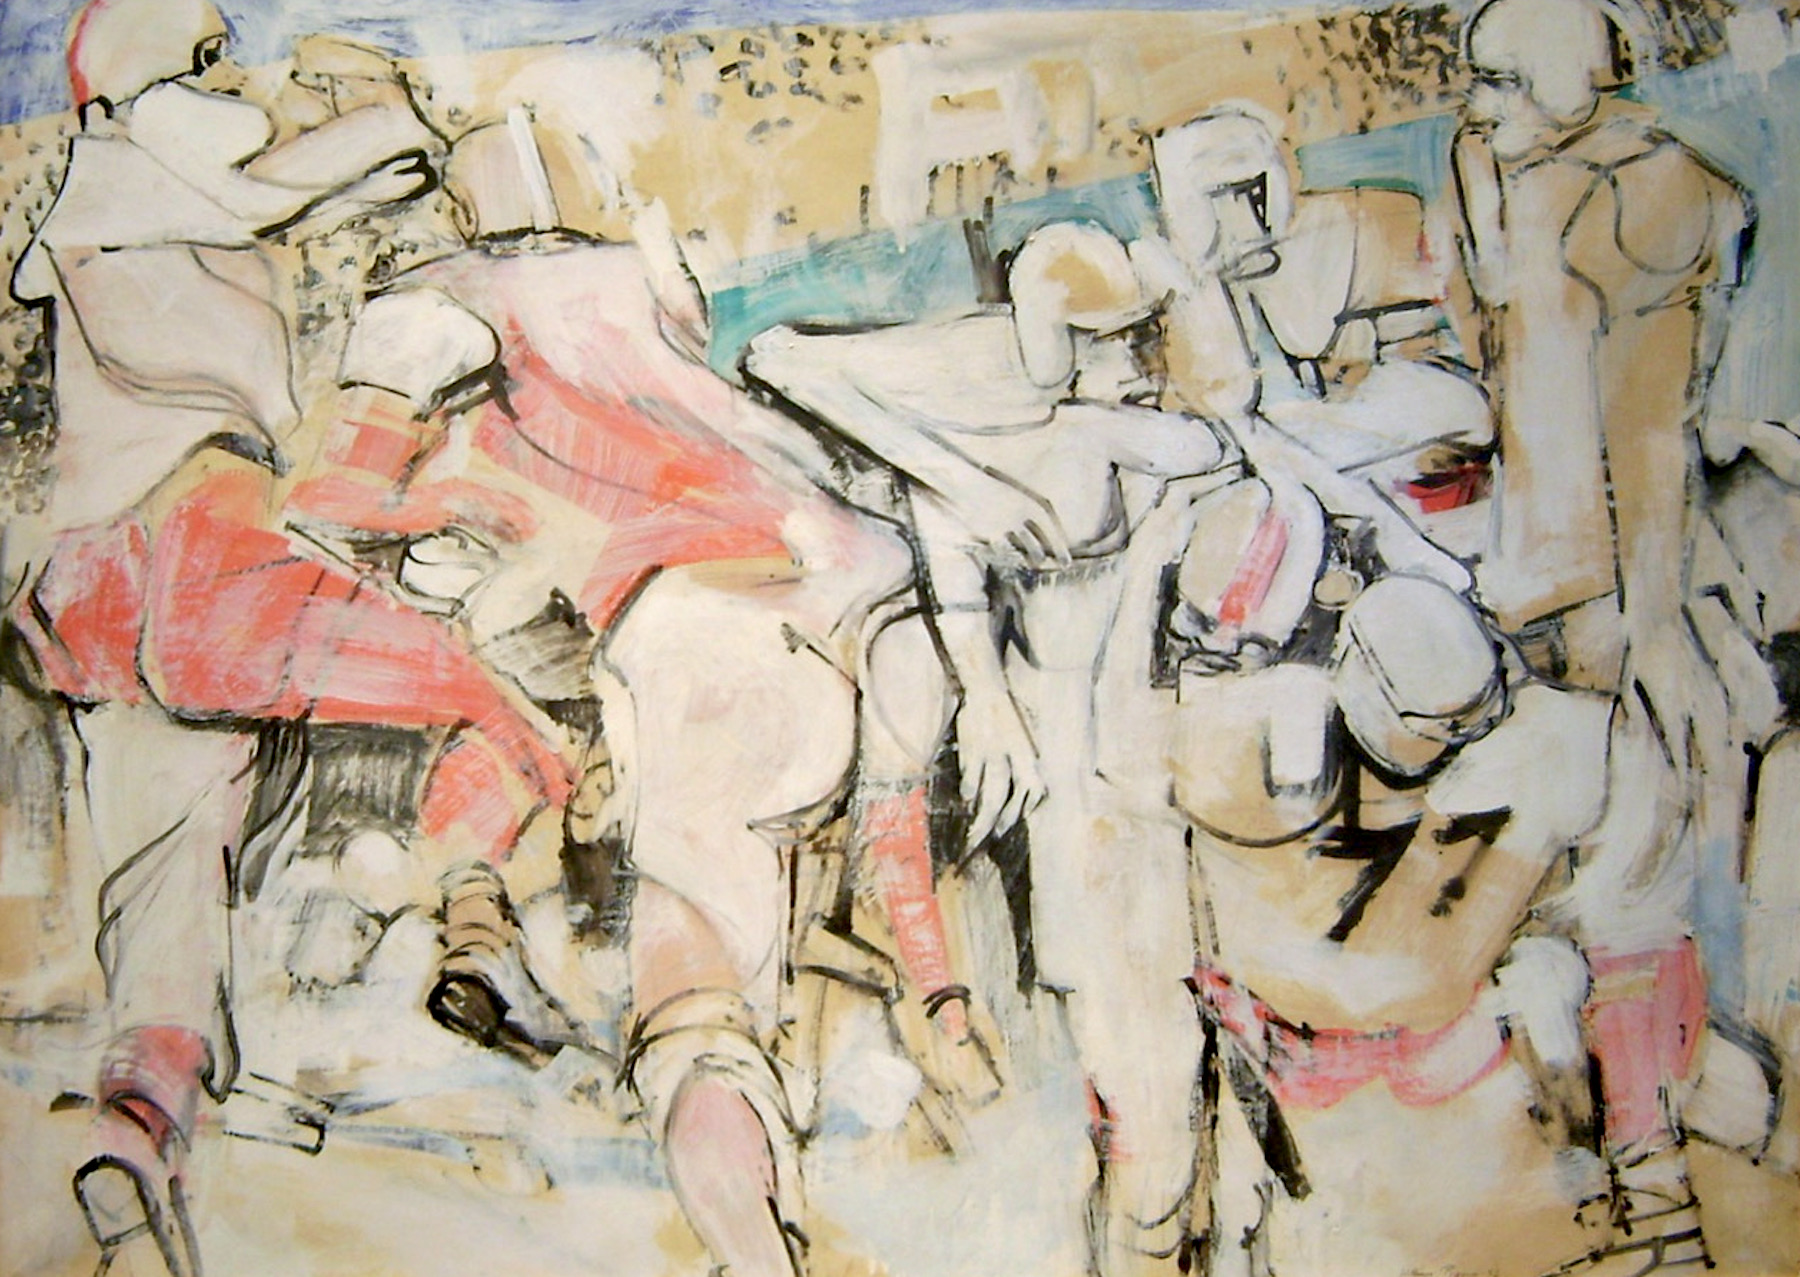 William Theophilus Brown     Untitled (Football),   1956 Oil on paper 42 x 55 inches       For More Information     Artist Biography, Exhibitions & Collections